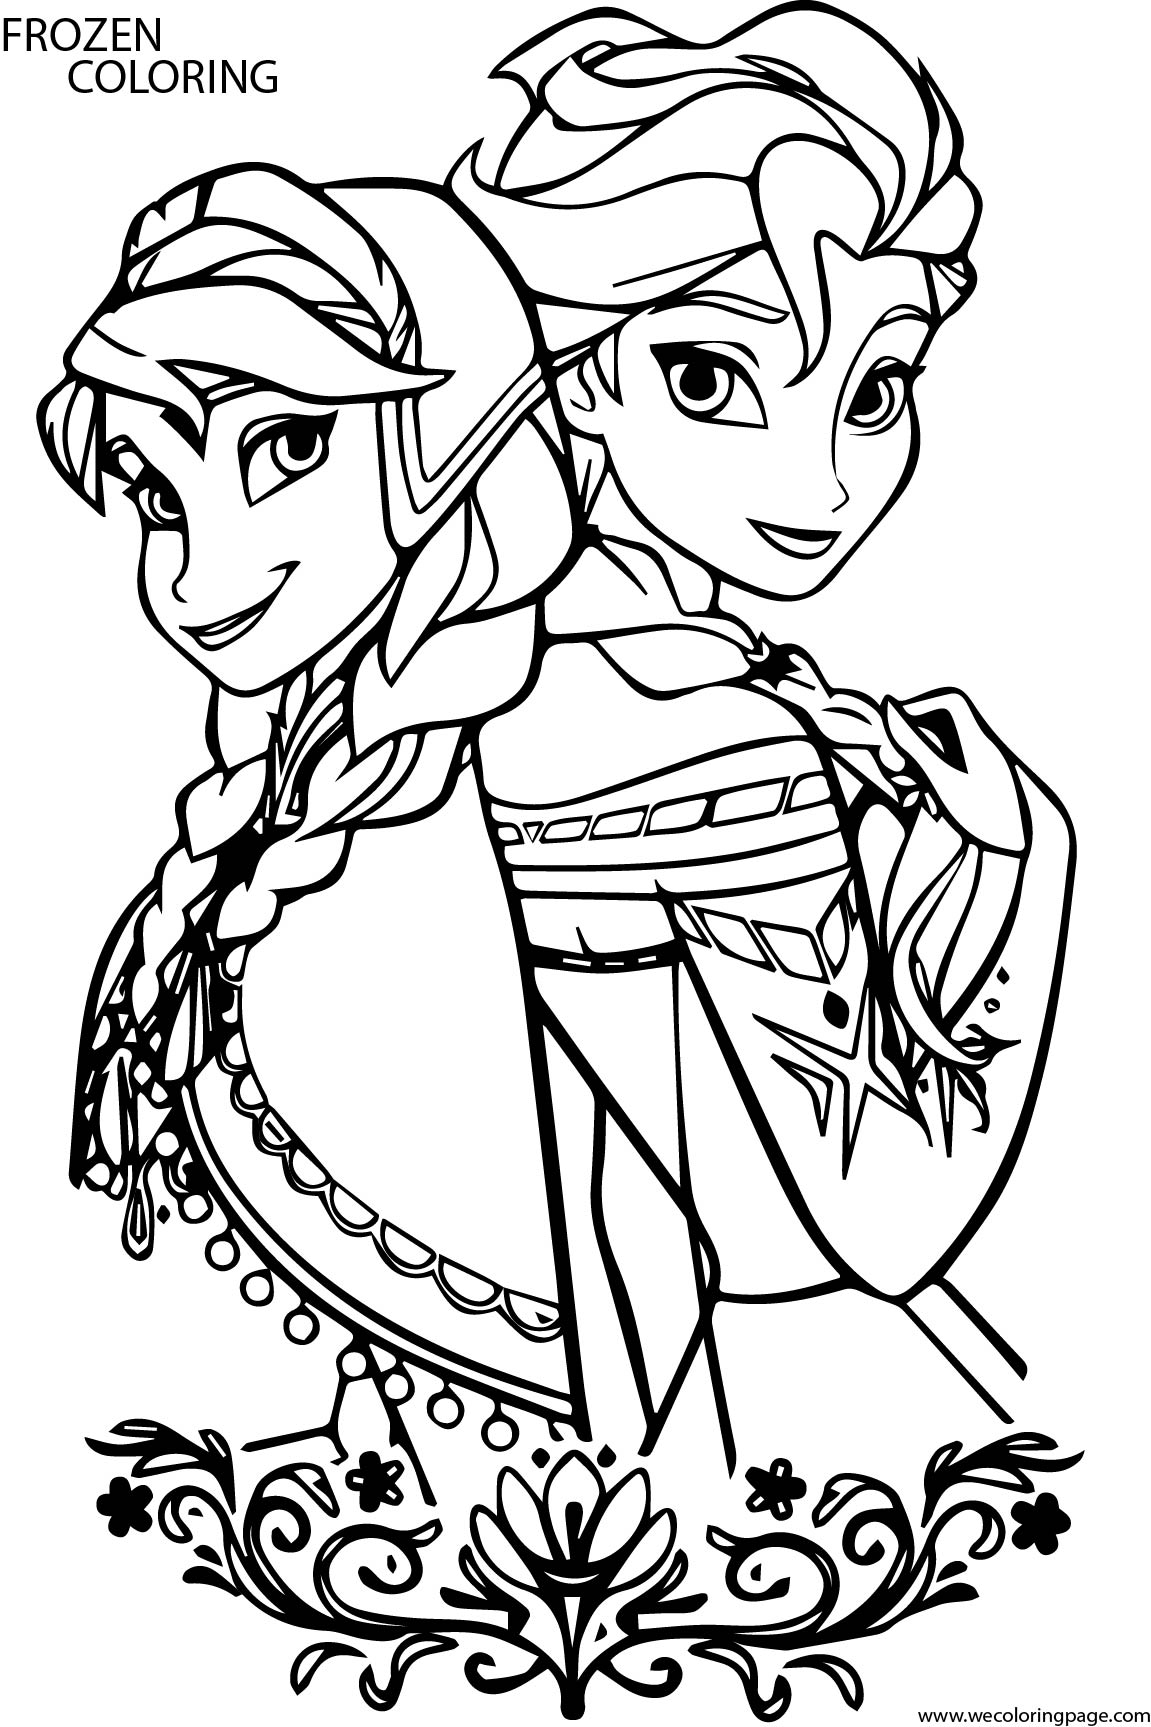 drawing frozen anna frozen drawing at getdrawings free download frozen drawing